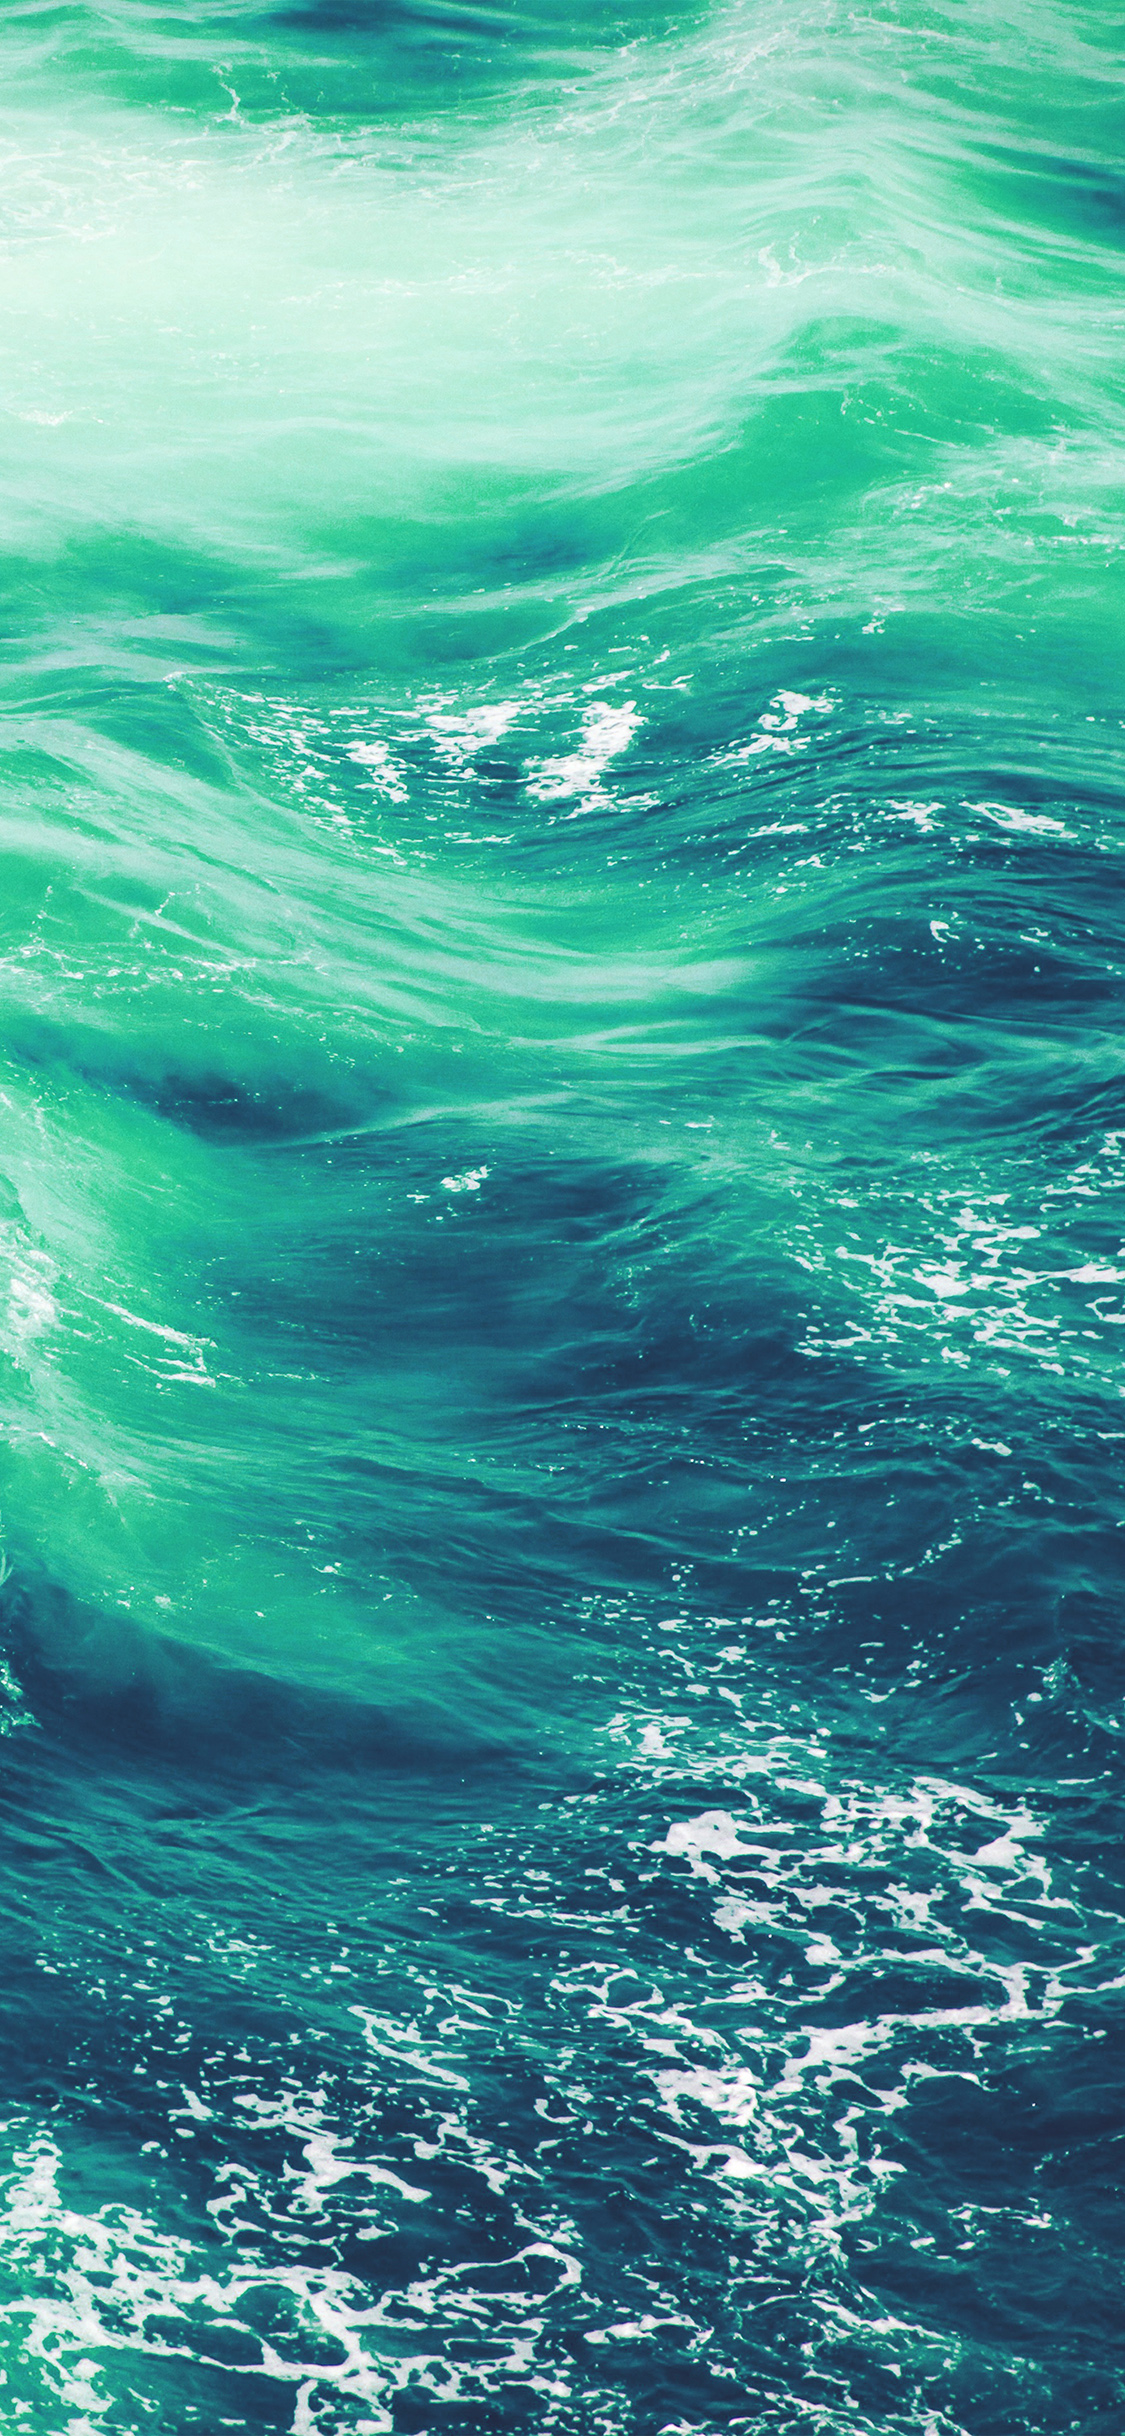 Iphone X Wallpaper For Note 8 Vq24 Wave Nature Water Blue Green Sea Ocean Pattern Wallpaper